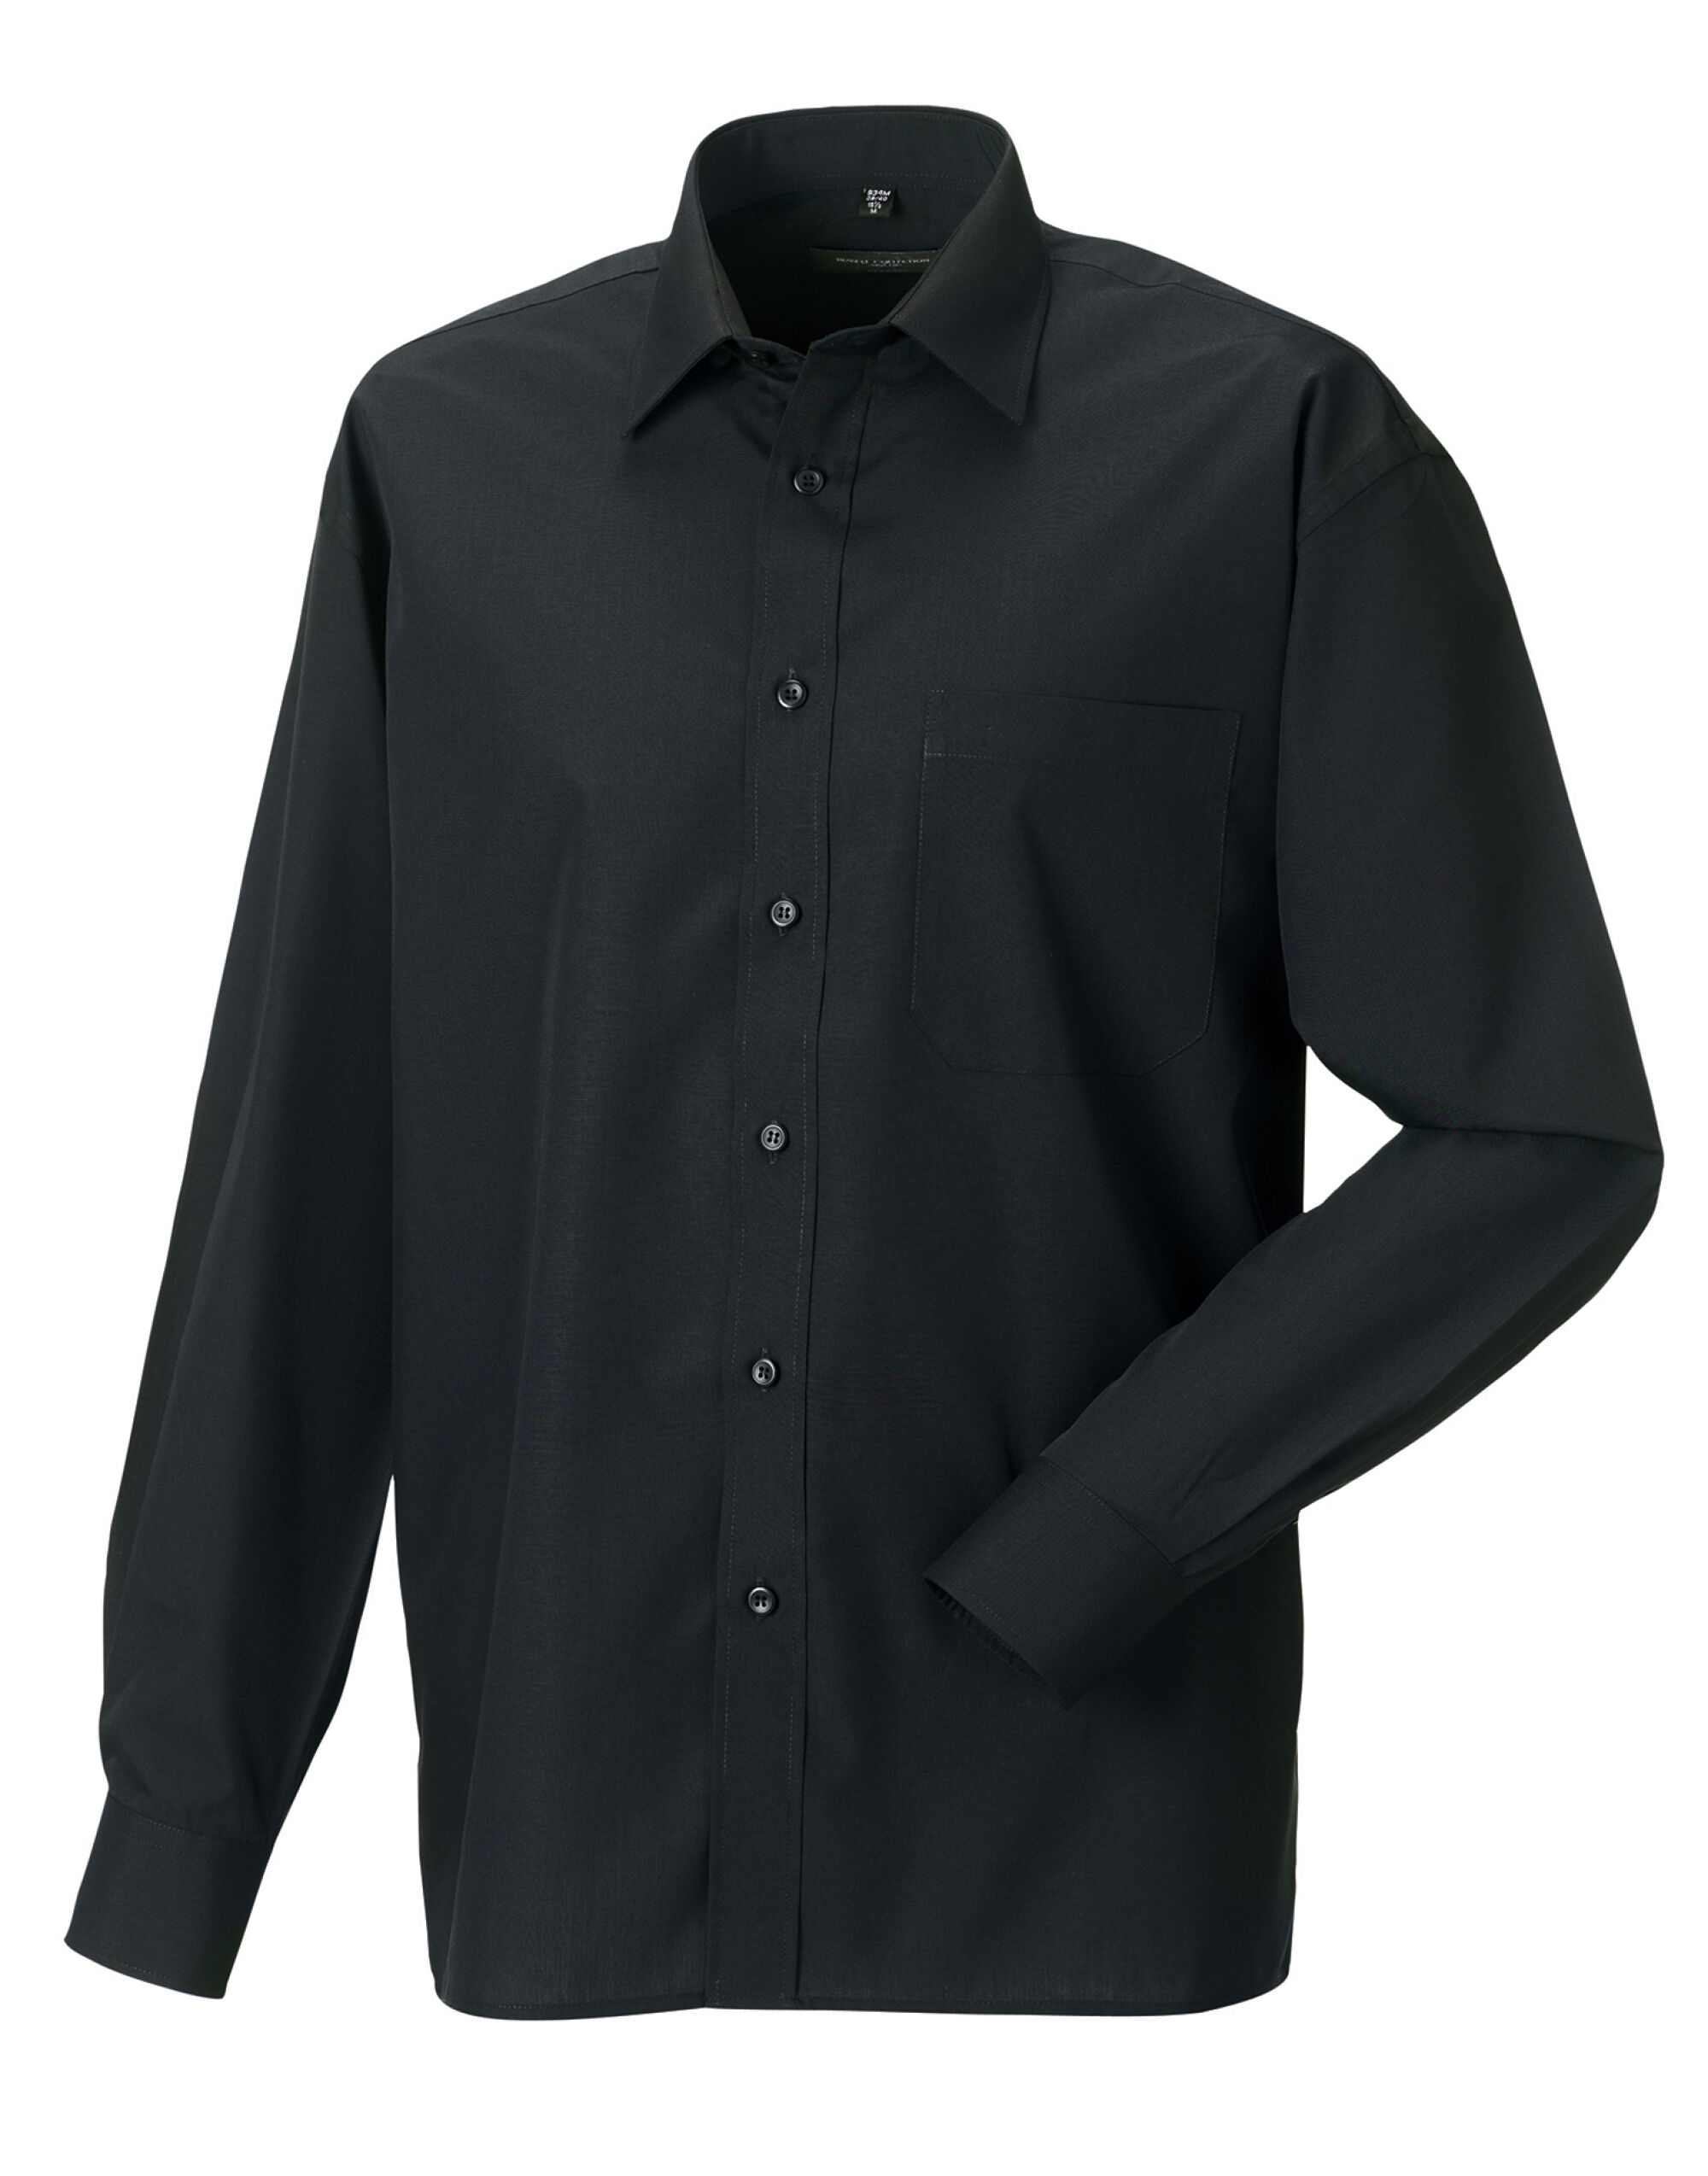 Men's Long Sleeve Easy Care Poplin Shirt